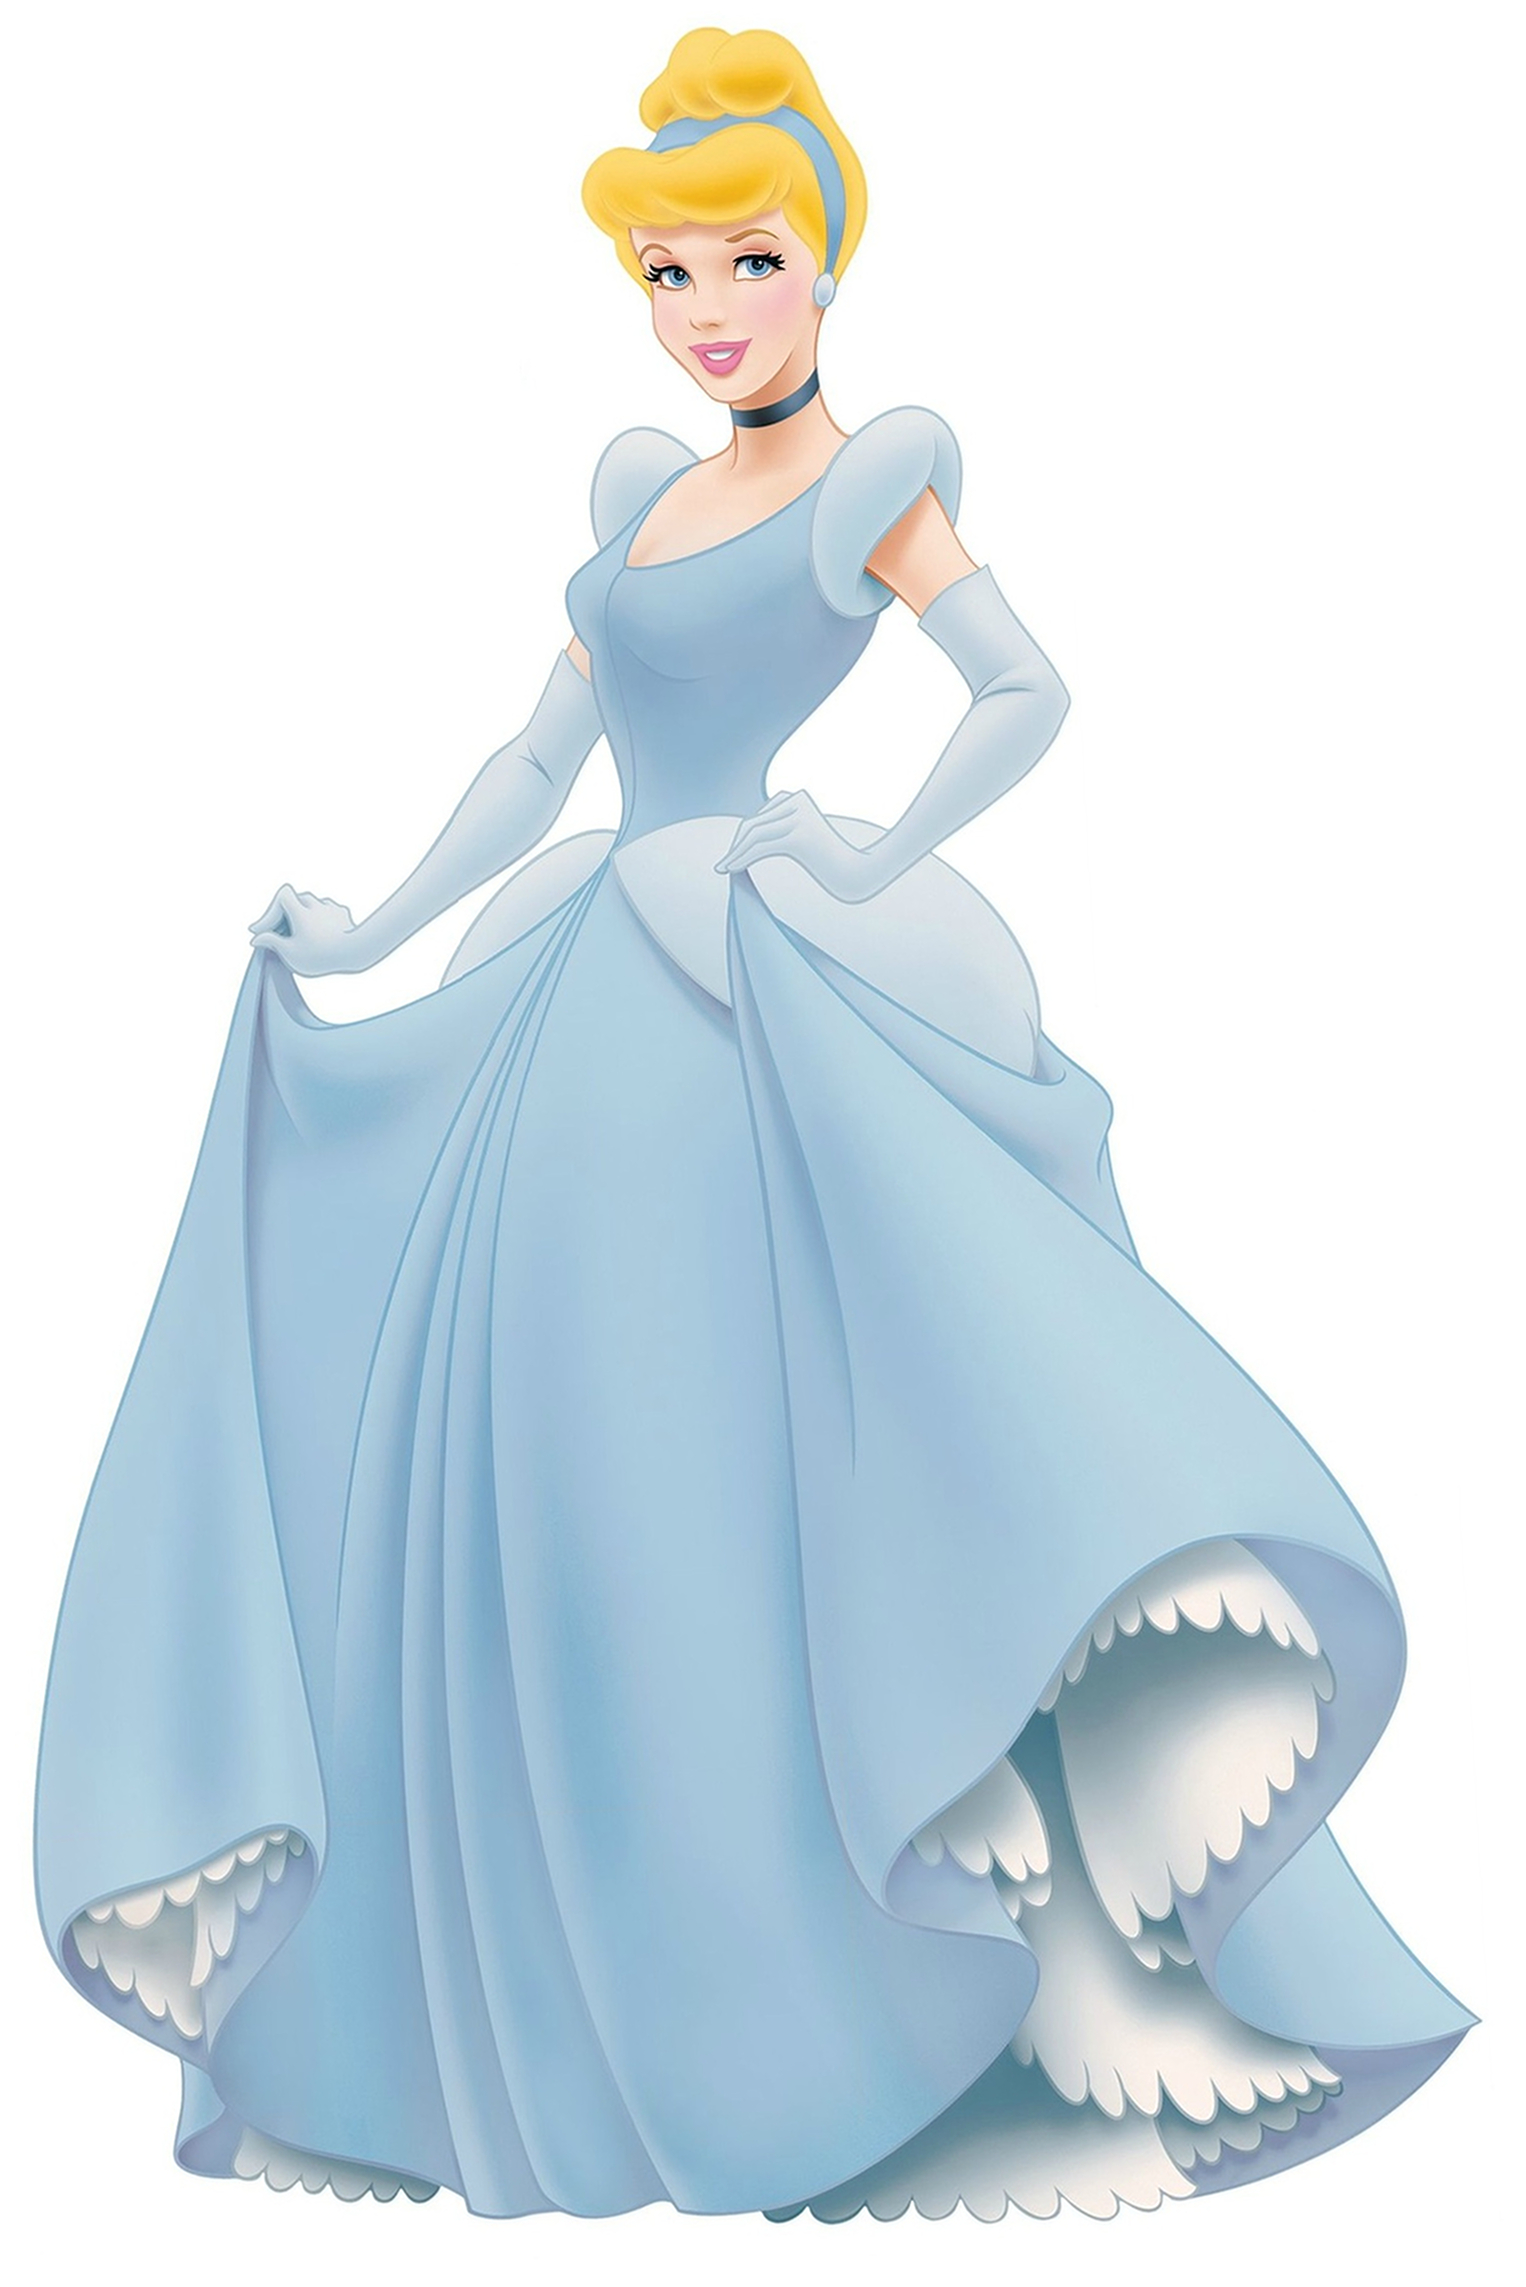 Image - Cinderella Photo jpg | Disney Wiki | Fandom powered by Wikia